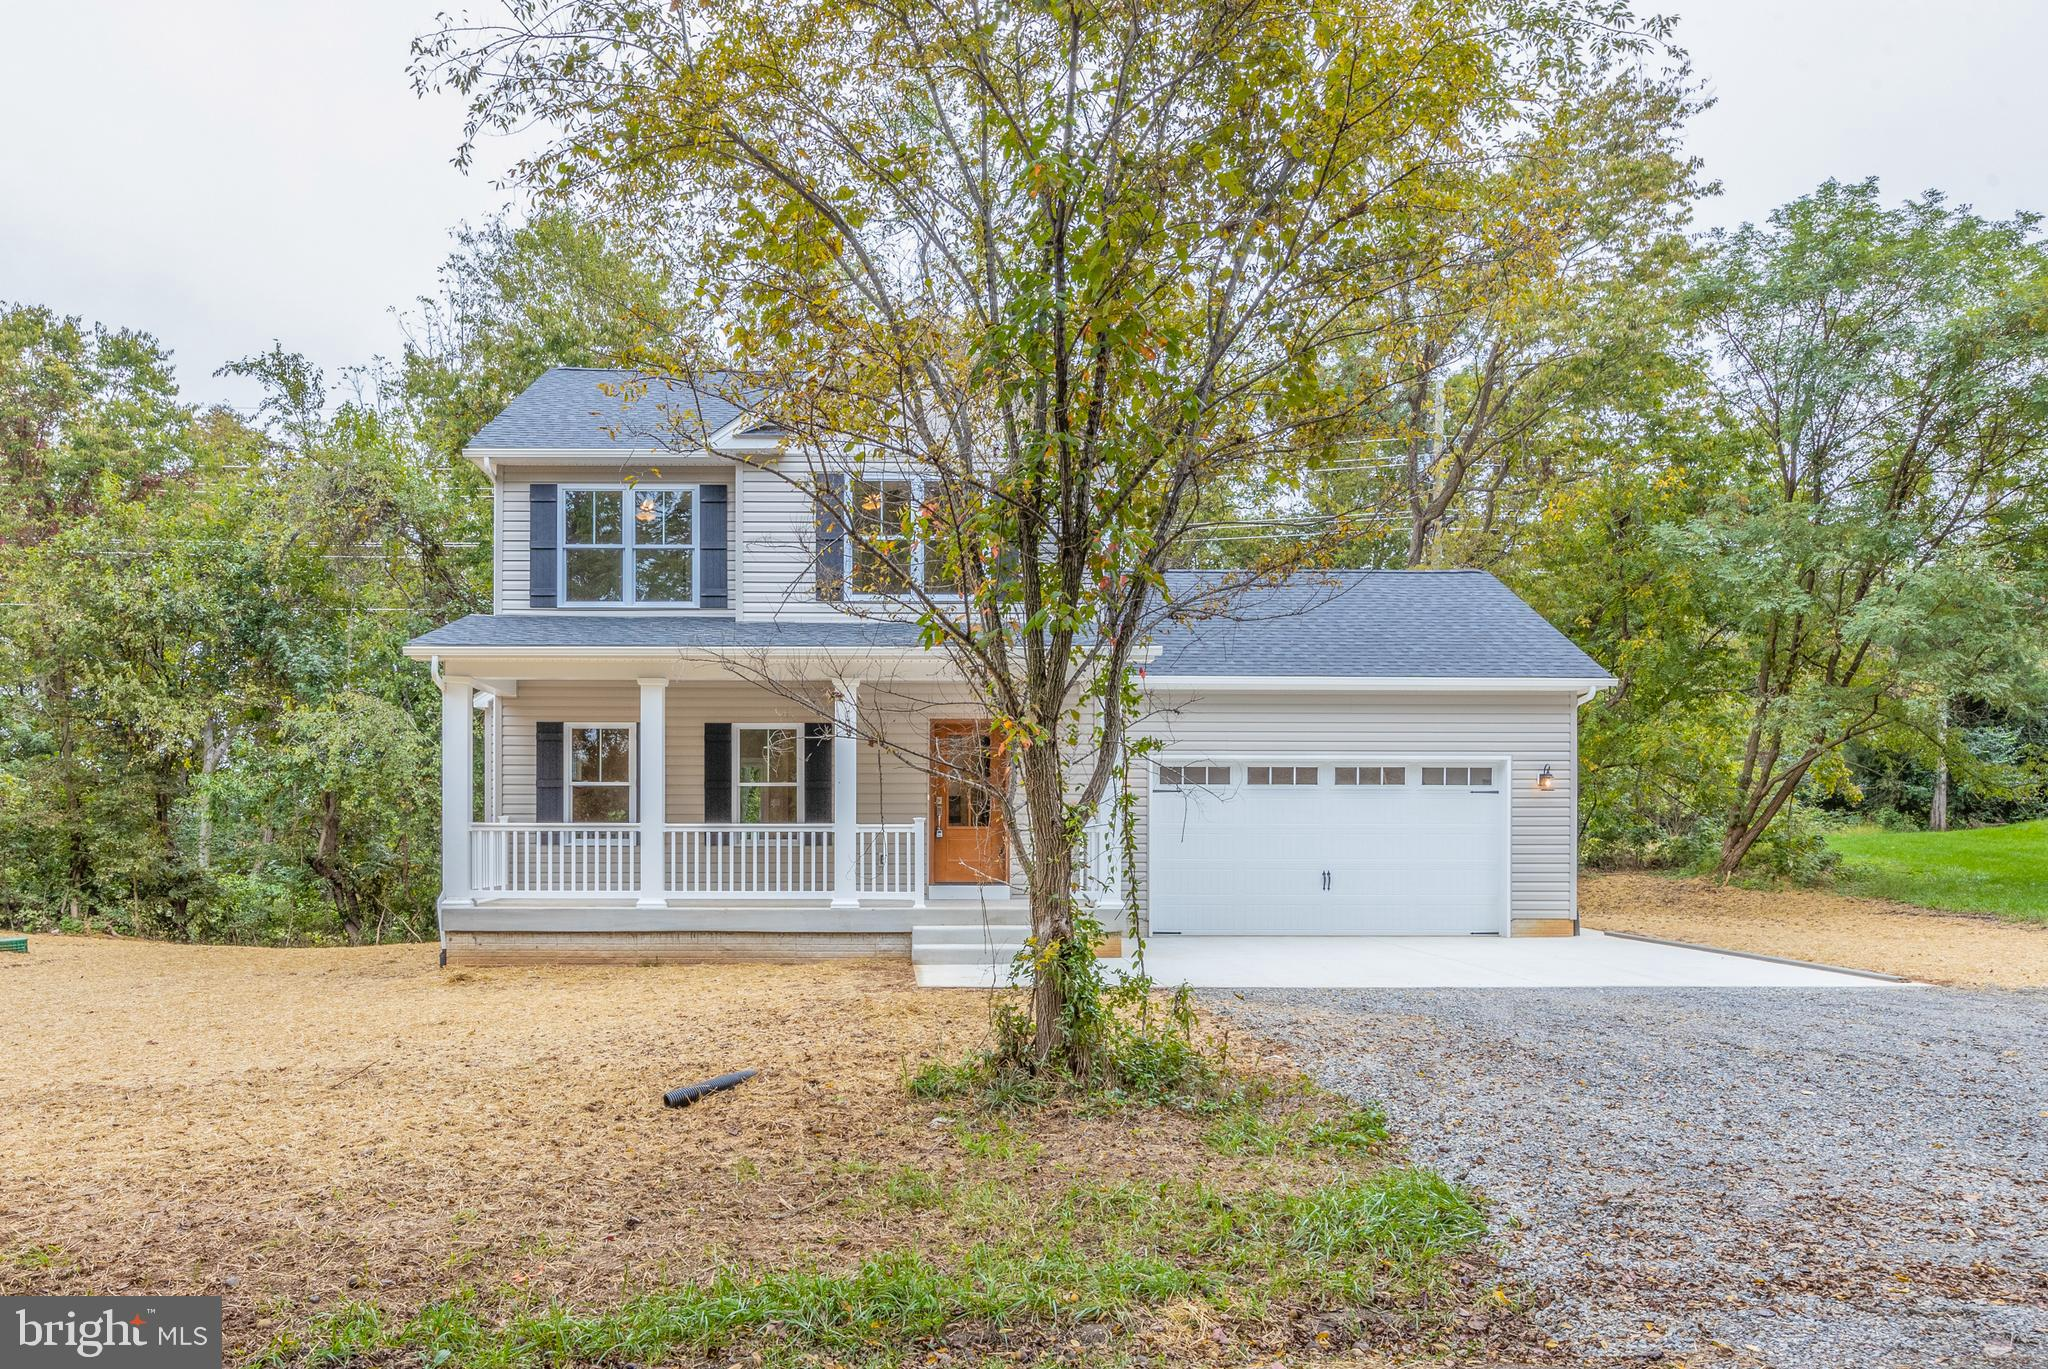 Warfield Homes Inc. is well known in Clarke County for their quality-built custom homes.  This Craft